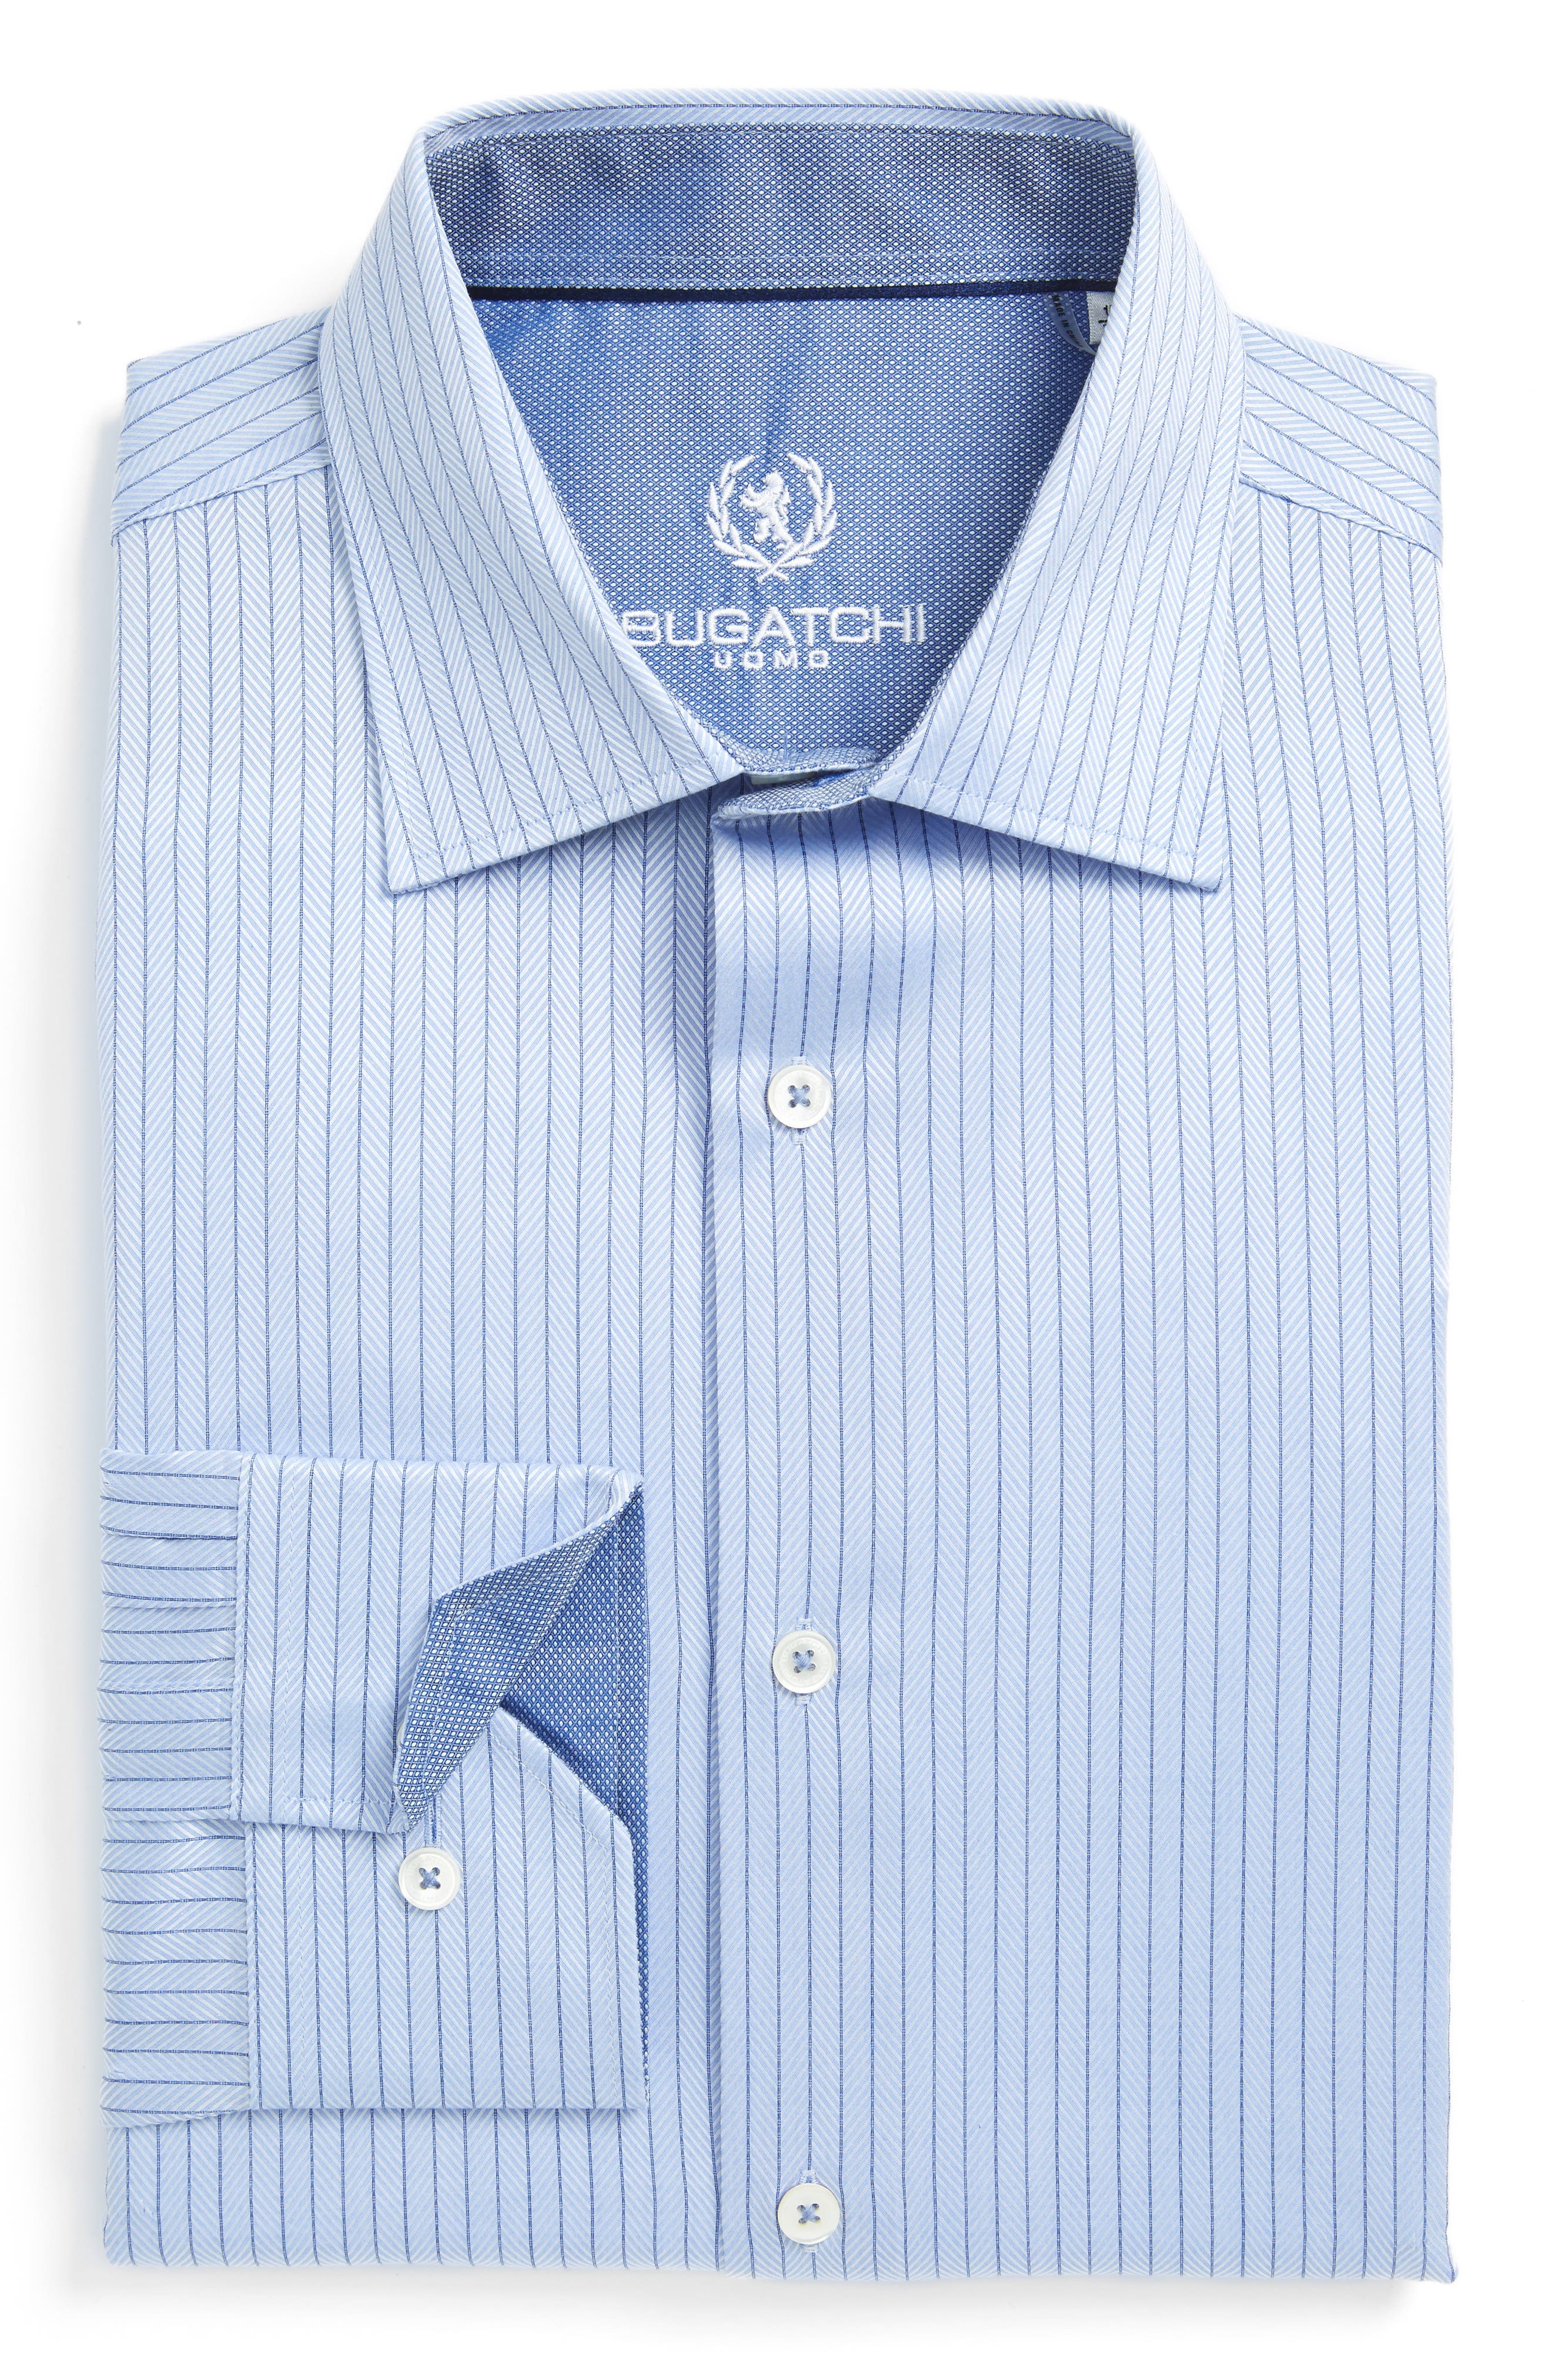 Main Image - Bugatchi Trim Fit Herringbone Dress Shirt